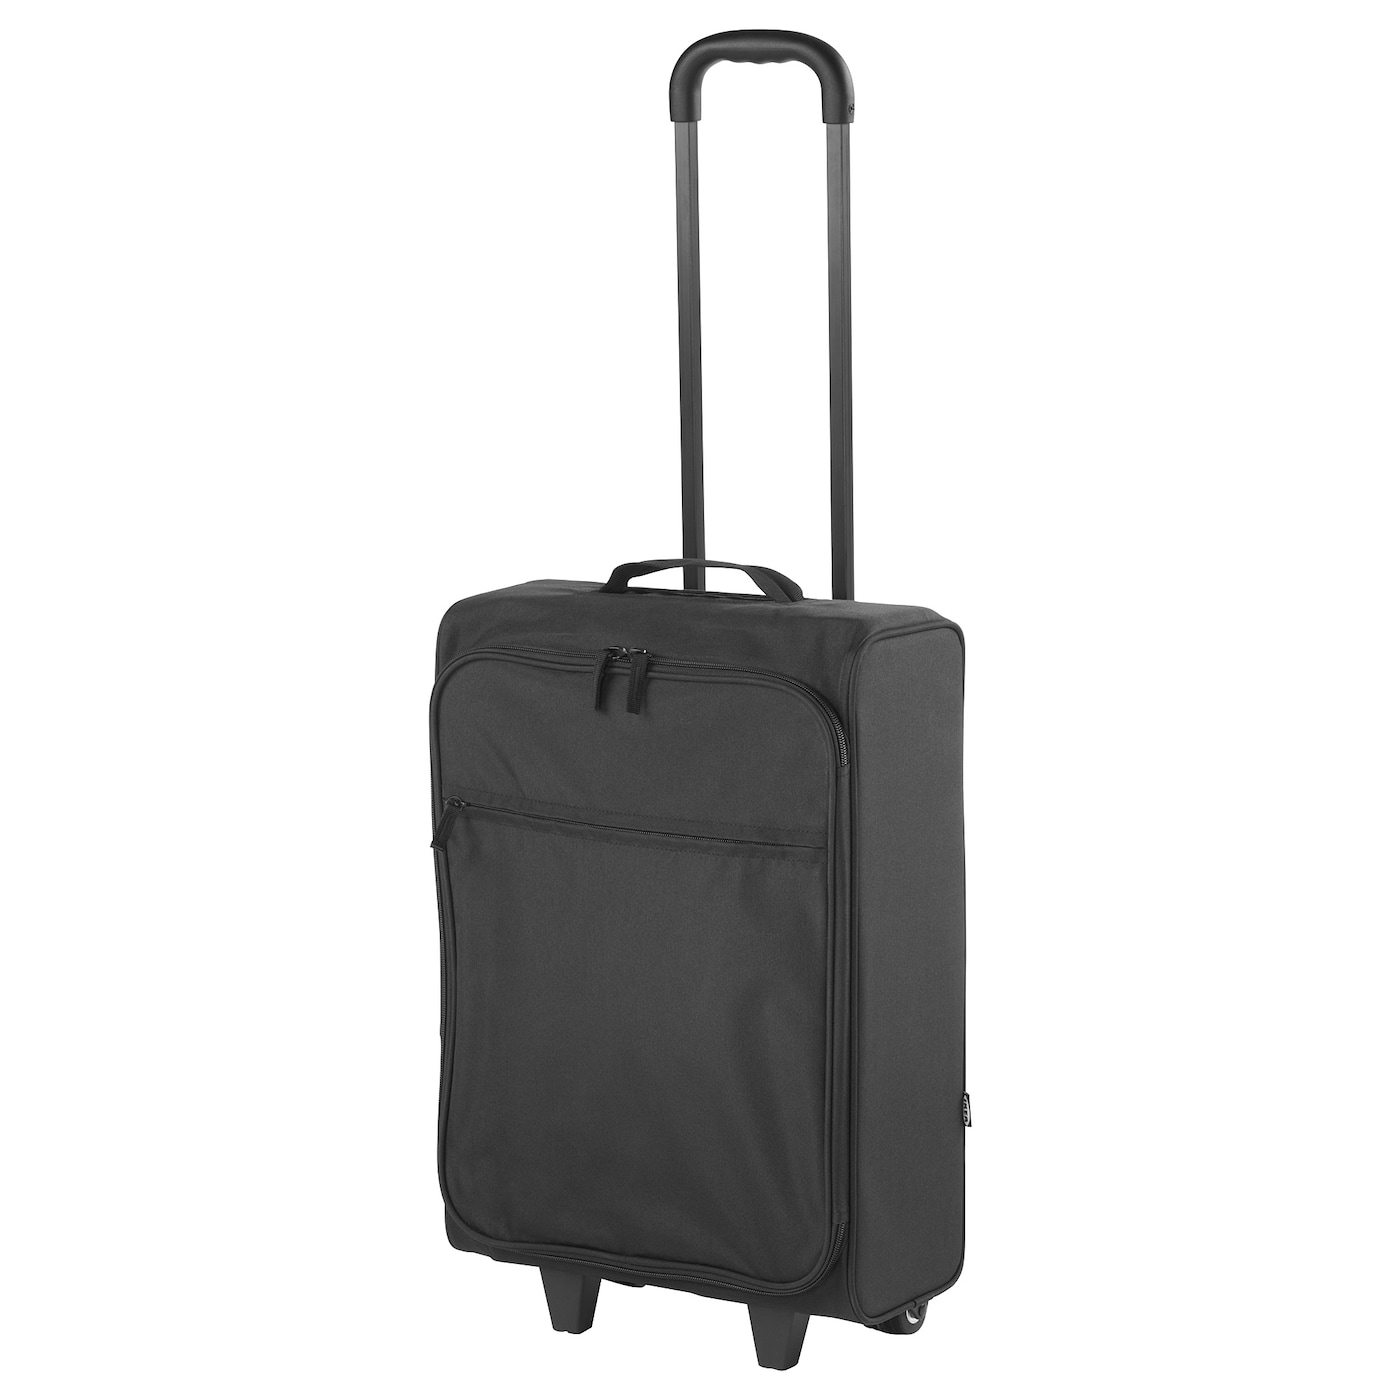 STARTTID Cabin bag on wheels - IKEA d517eea80da5